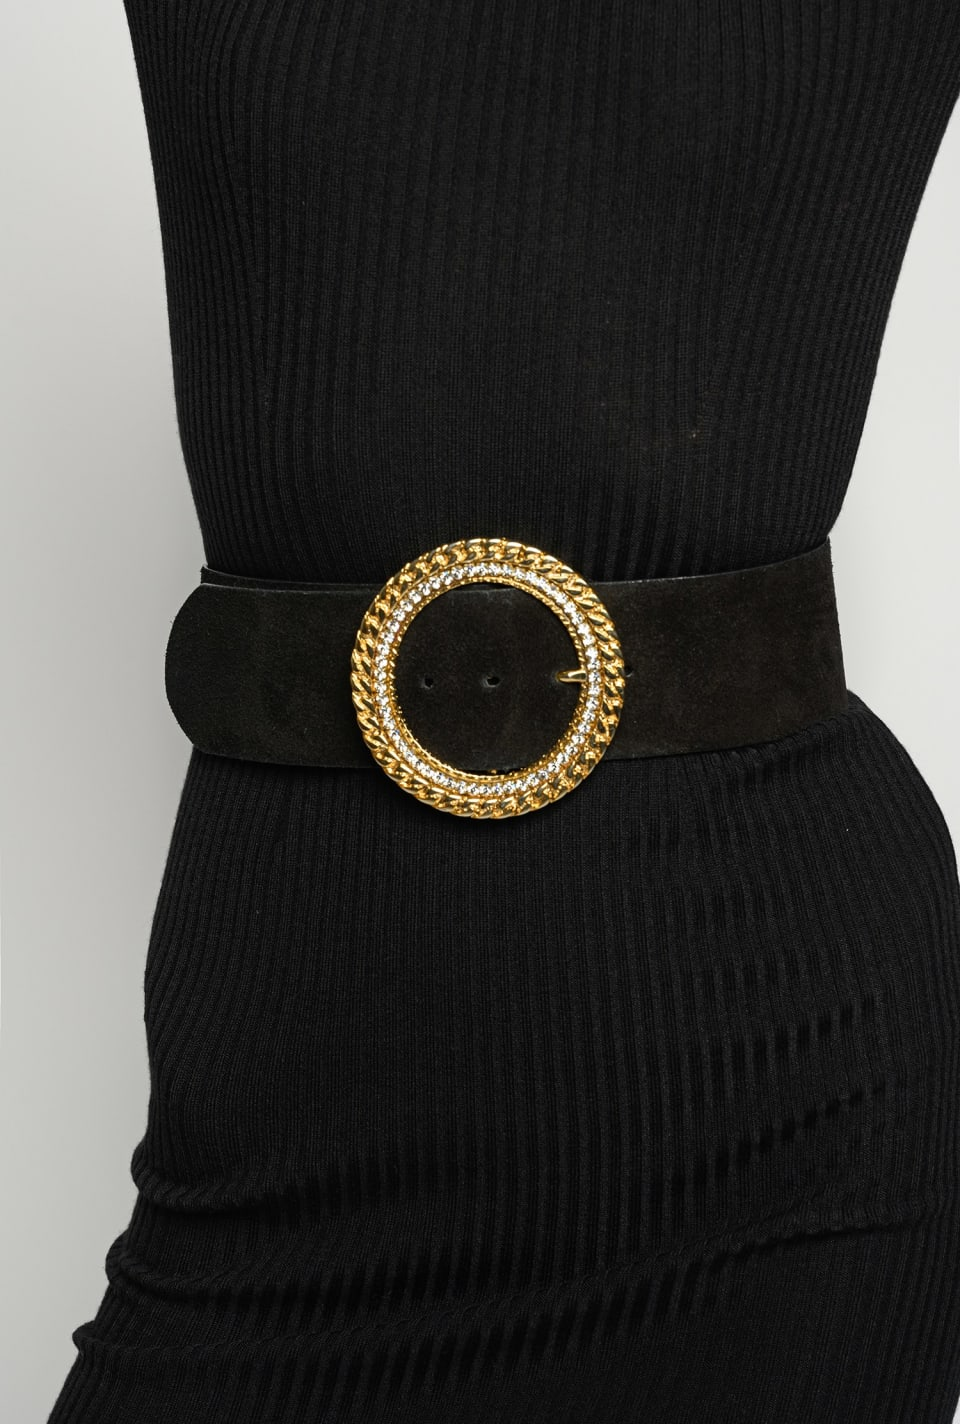 Suede belt with circular buckle - Pinko